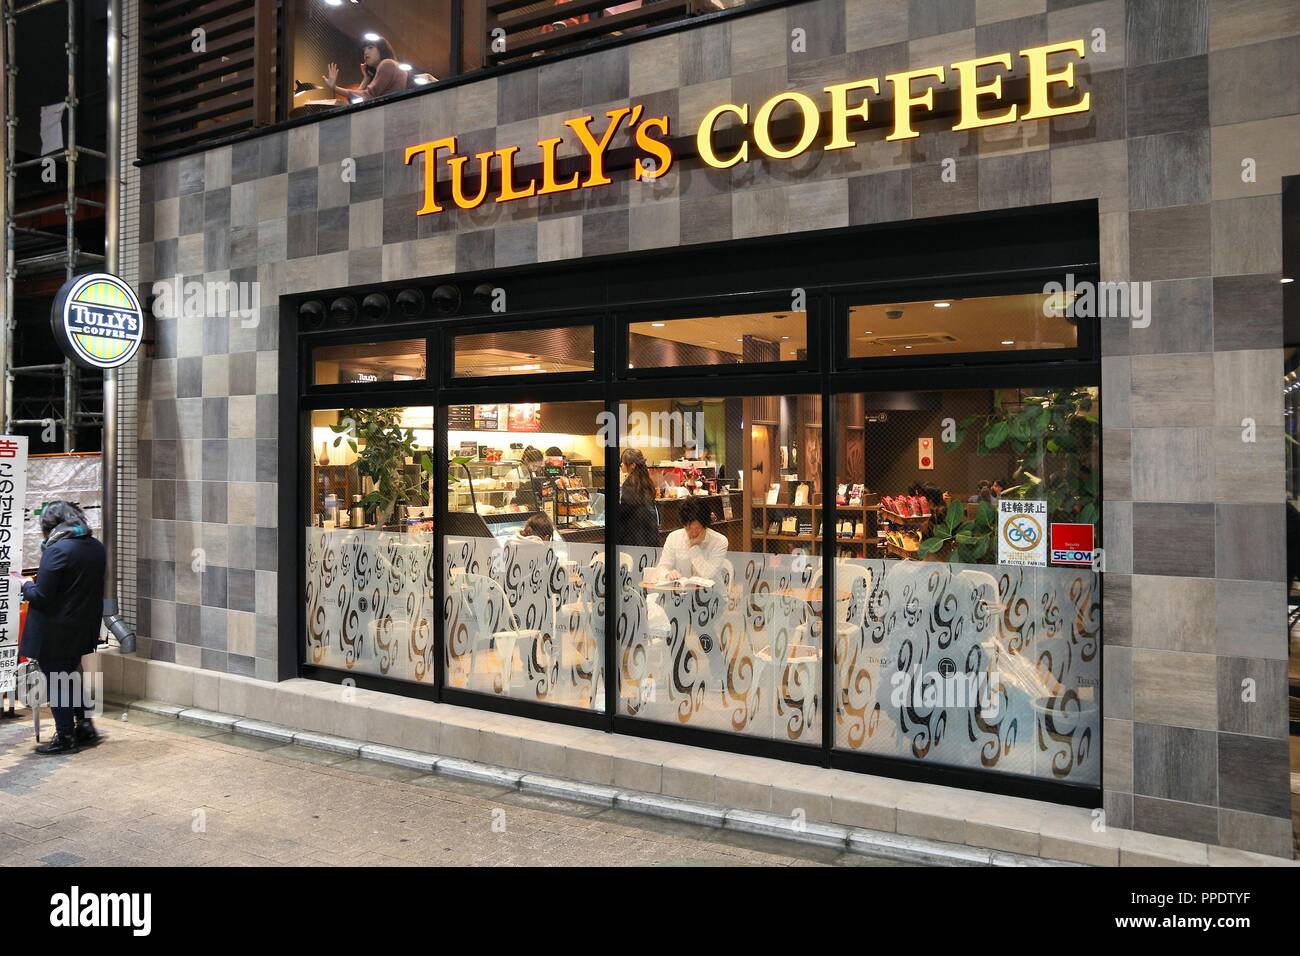 KYOTO, JAPAN - NOVEMBER 27, 2016: People visit Tully's Coffee cafe in Kyoto, Japan. Tully's Coffee was a U.S. chain of coffeehouses, but today it is o - Stock Image